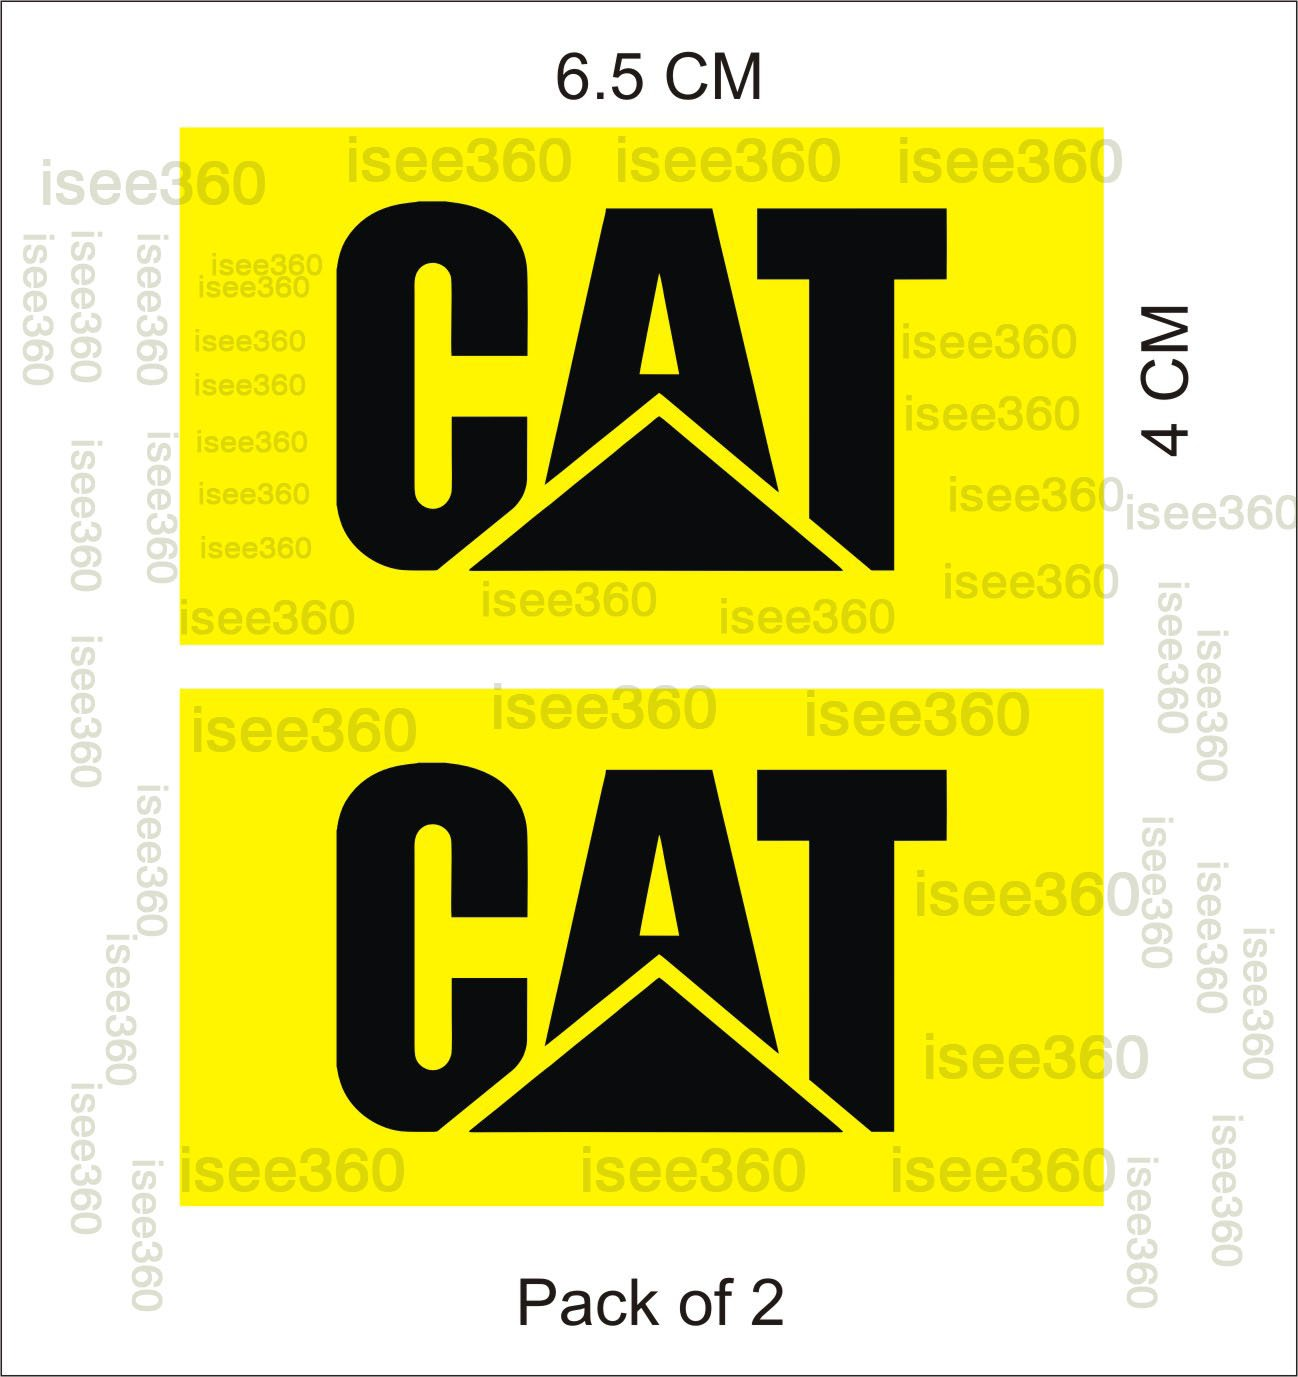 Isee 360 water resistance die cut vinyl decal cat logo sticker for handle bar disc box bike chaise visor mudguard car yellow small pack of 2